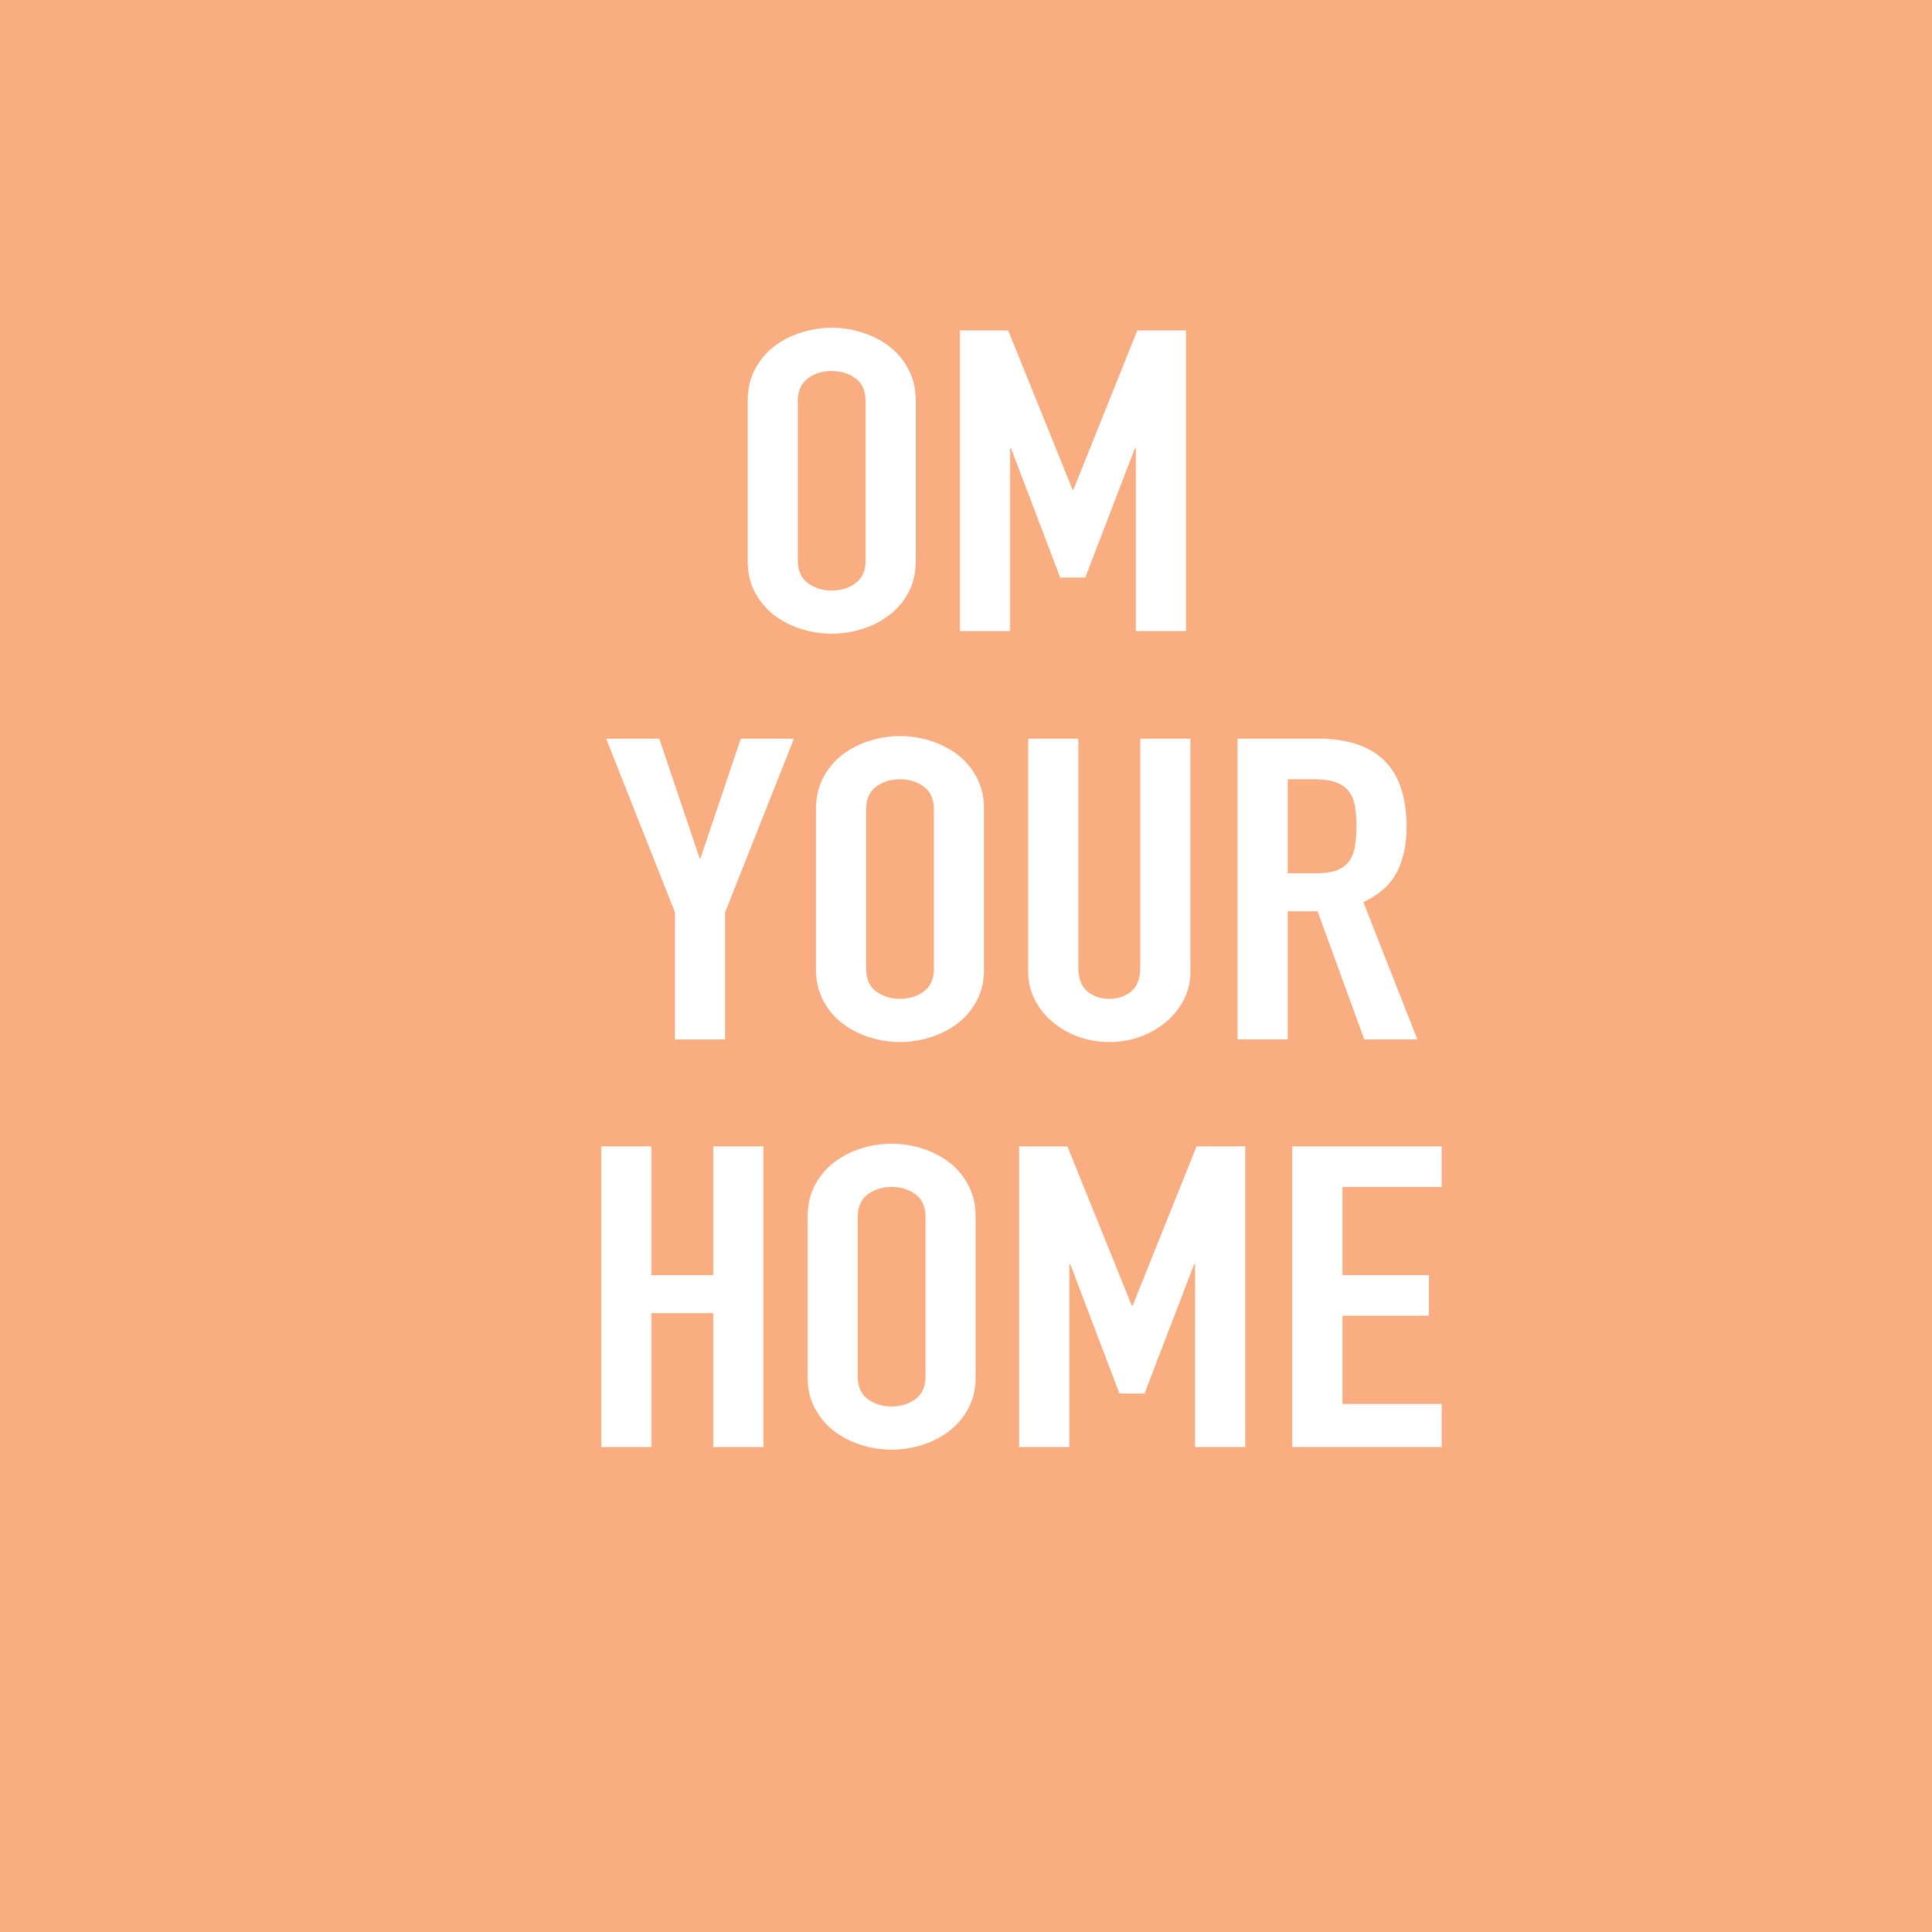 Om your home? More like  own  your life! You're taking control to surround yourself with positive energy in every corner of your living space. We will systematically go through each room and categorize your things. It sounds like a lot, we know, but it will go faster than you think. We'll get your life back in order in no time!